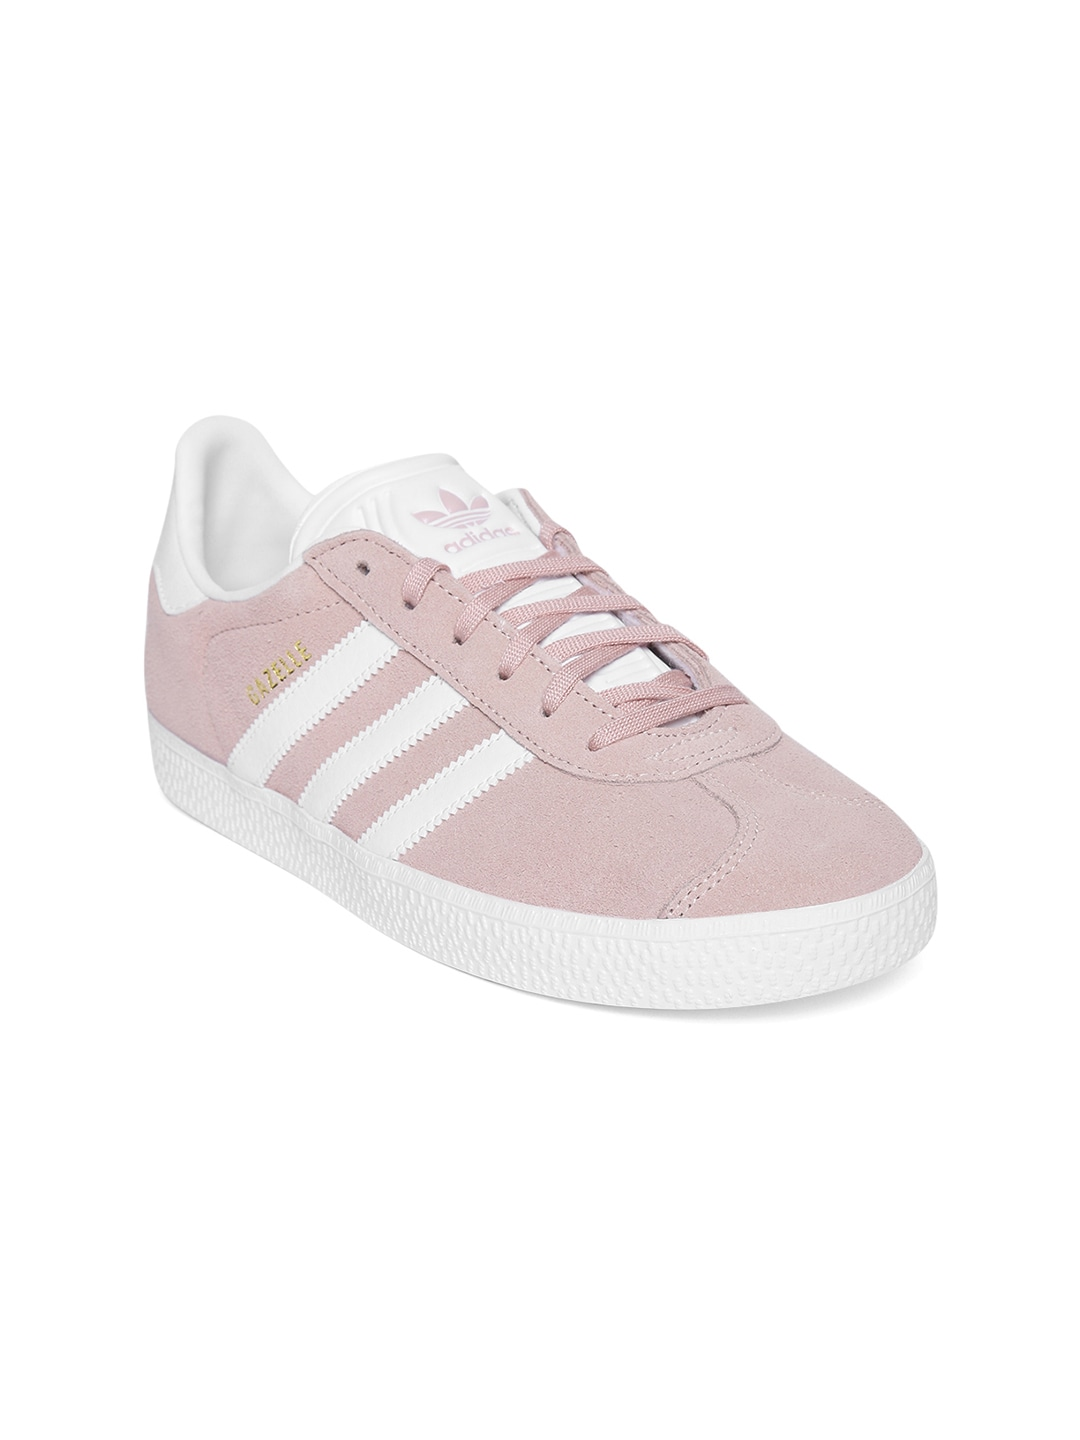 98c5bf29f51 Adidas Campus Shoes Sandal - Buy Adidas Campus Shoes Sandal online in India